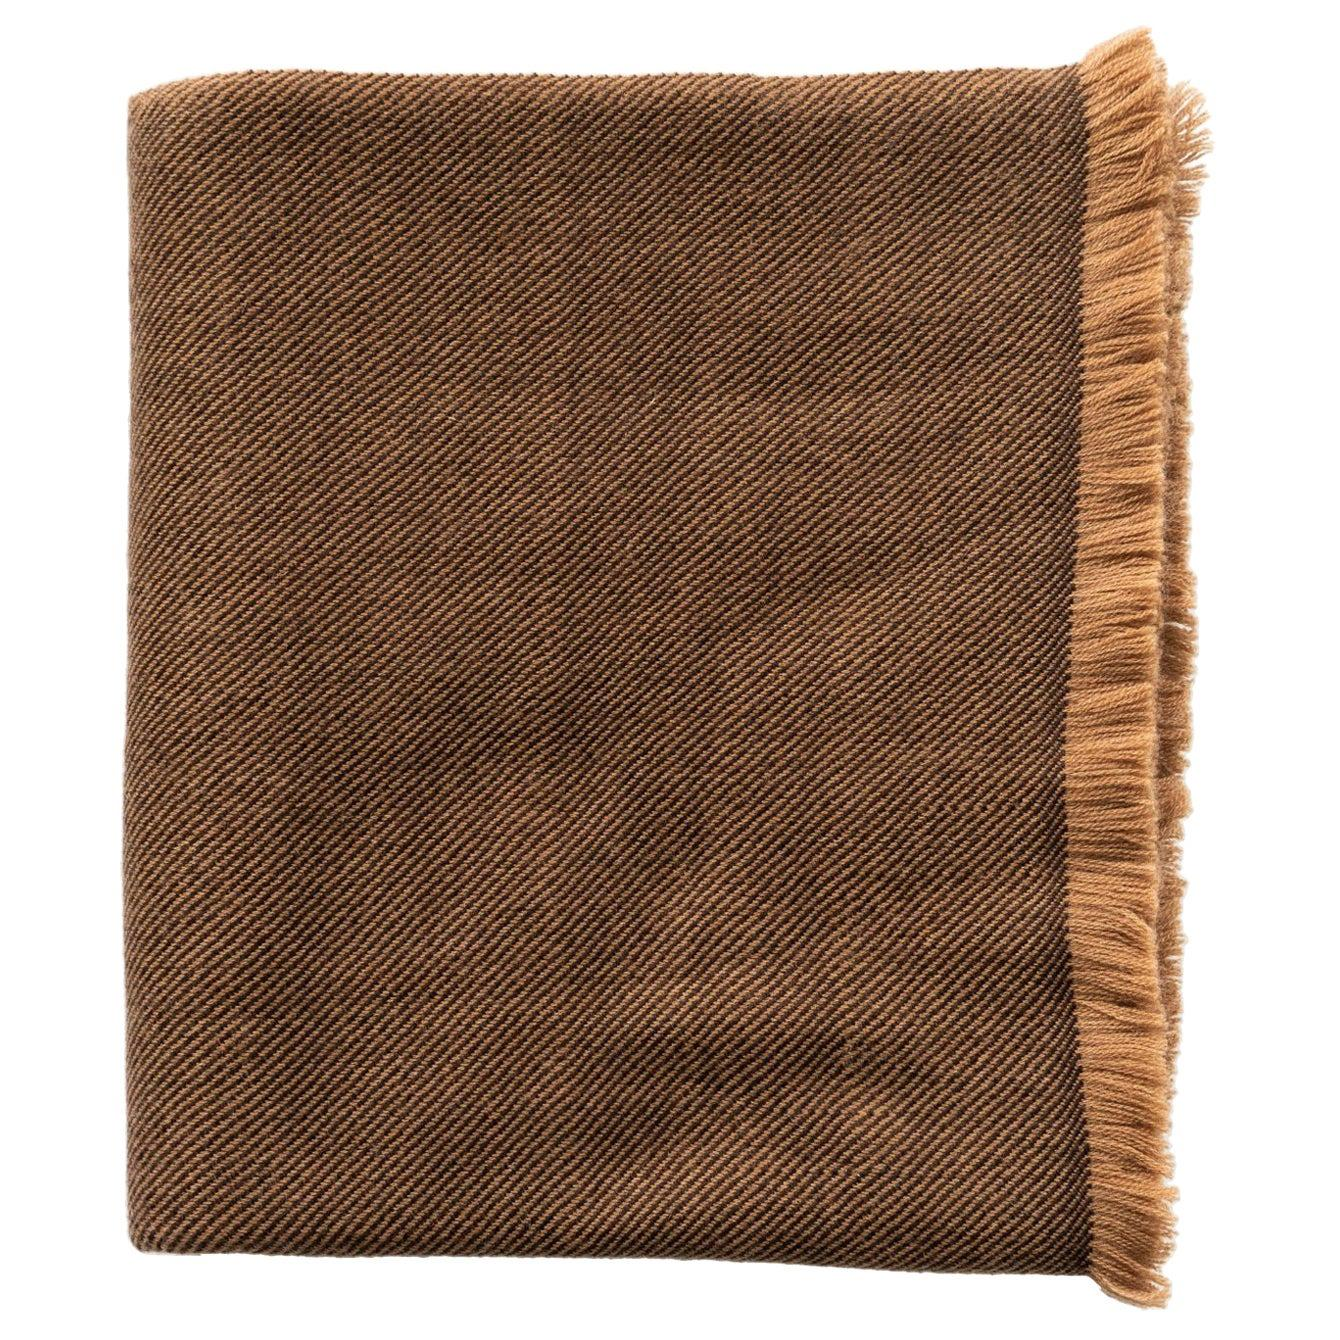 Hay, Warm Brown Shade King Size Bedspread / Coverlet Handwoven in Soft Merino